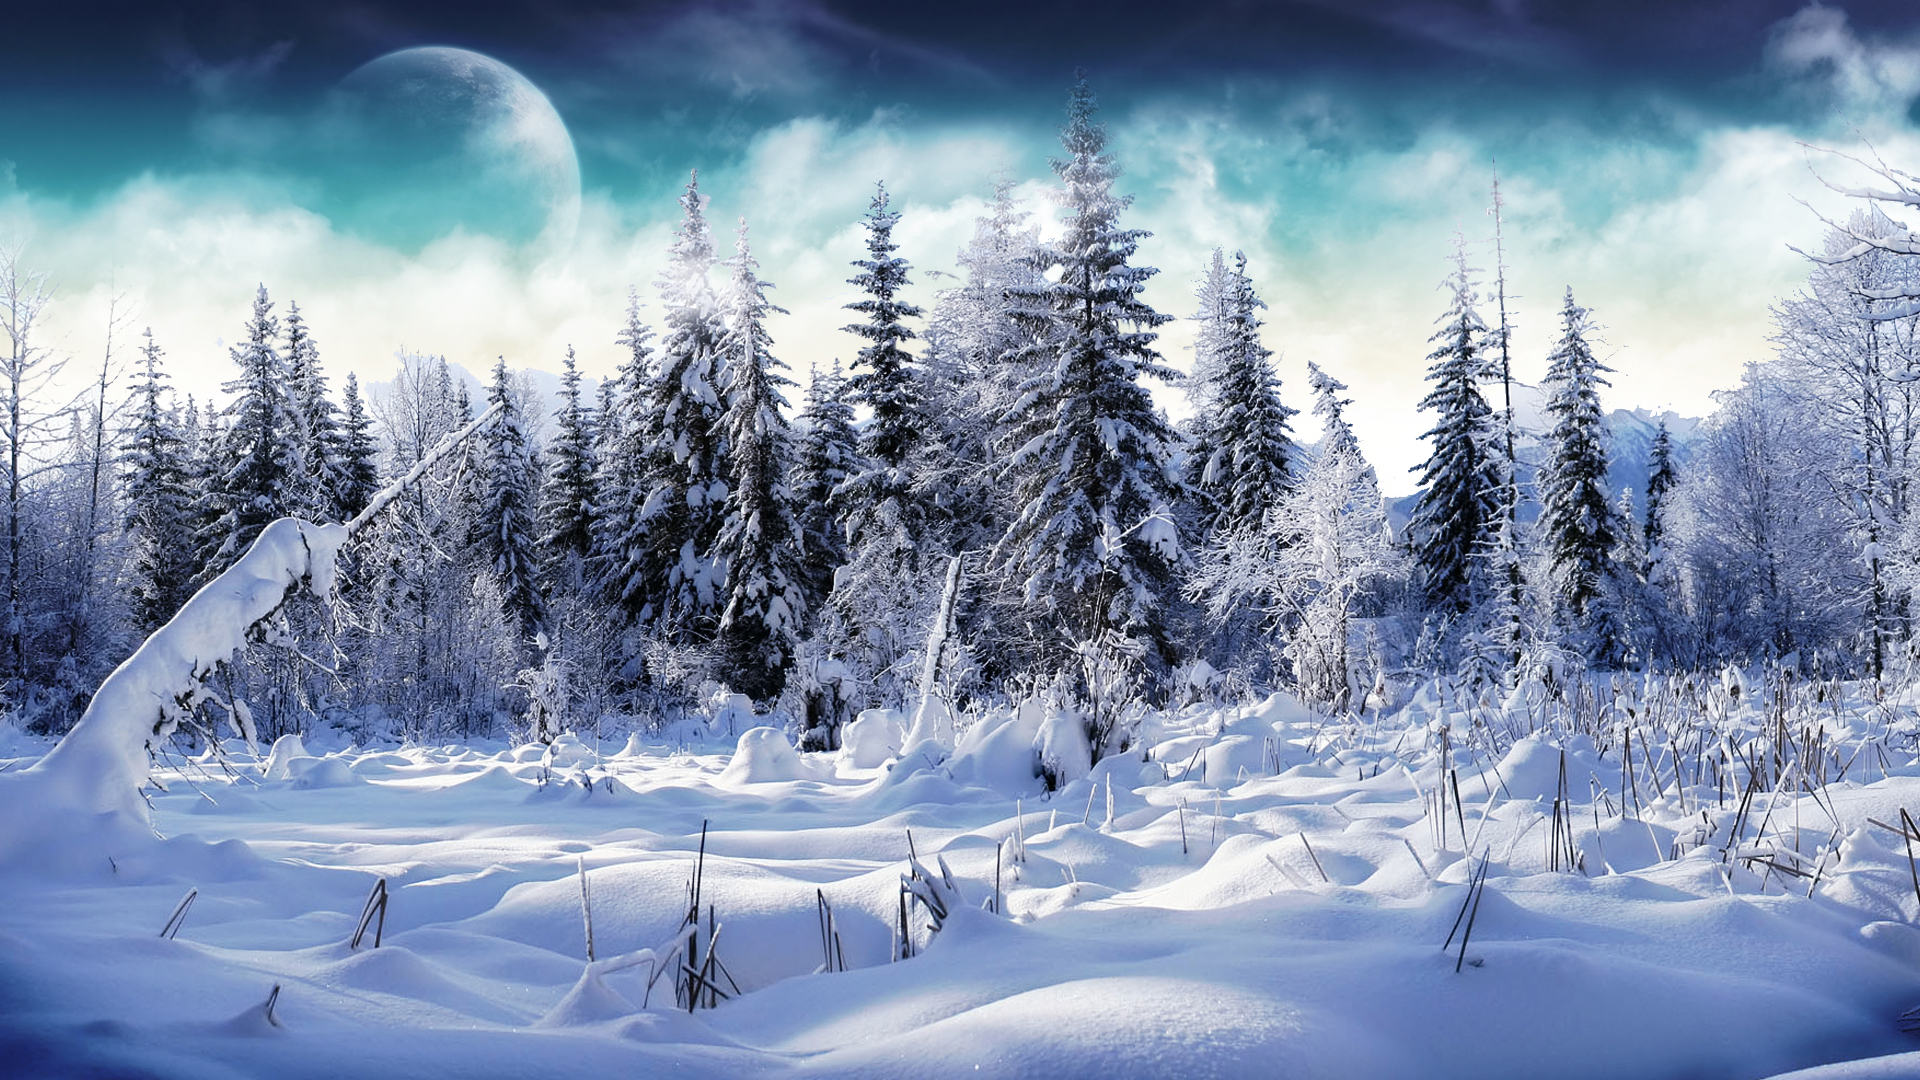 Winter Wallpaper 1920x1080